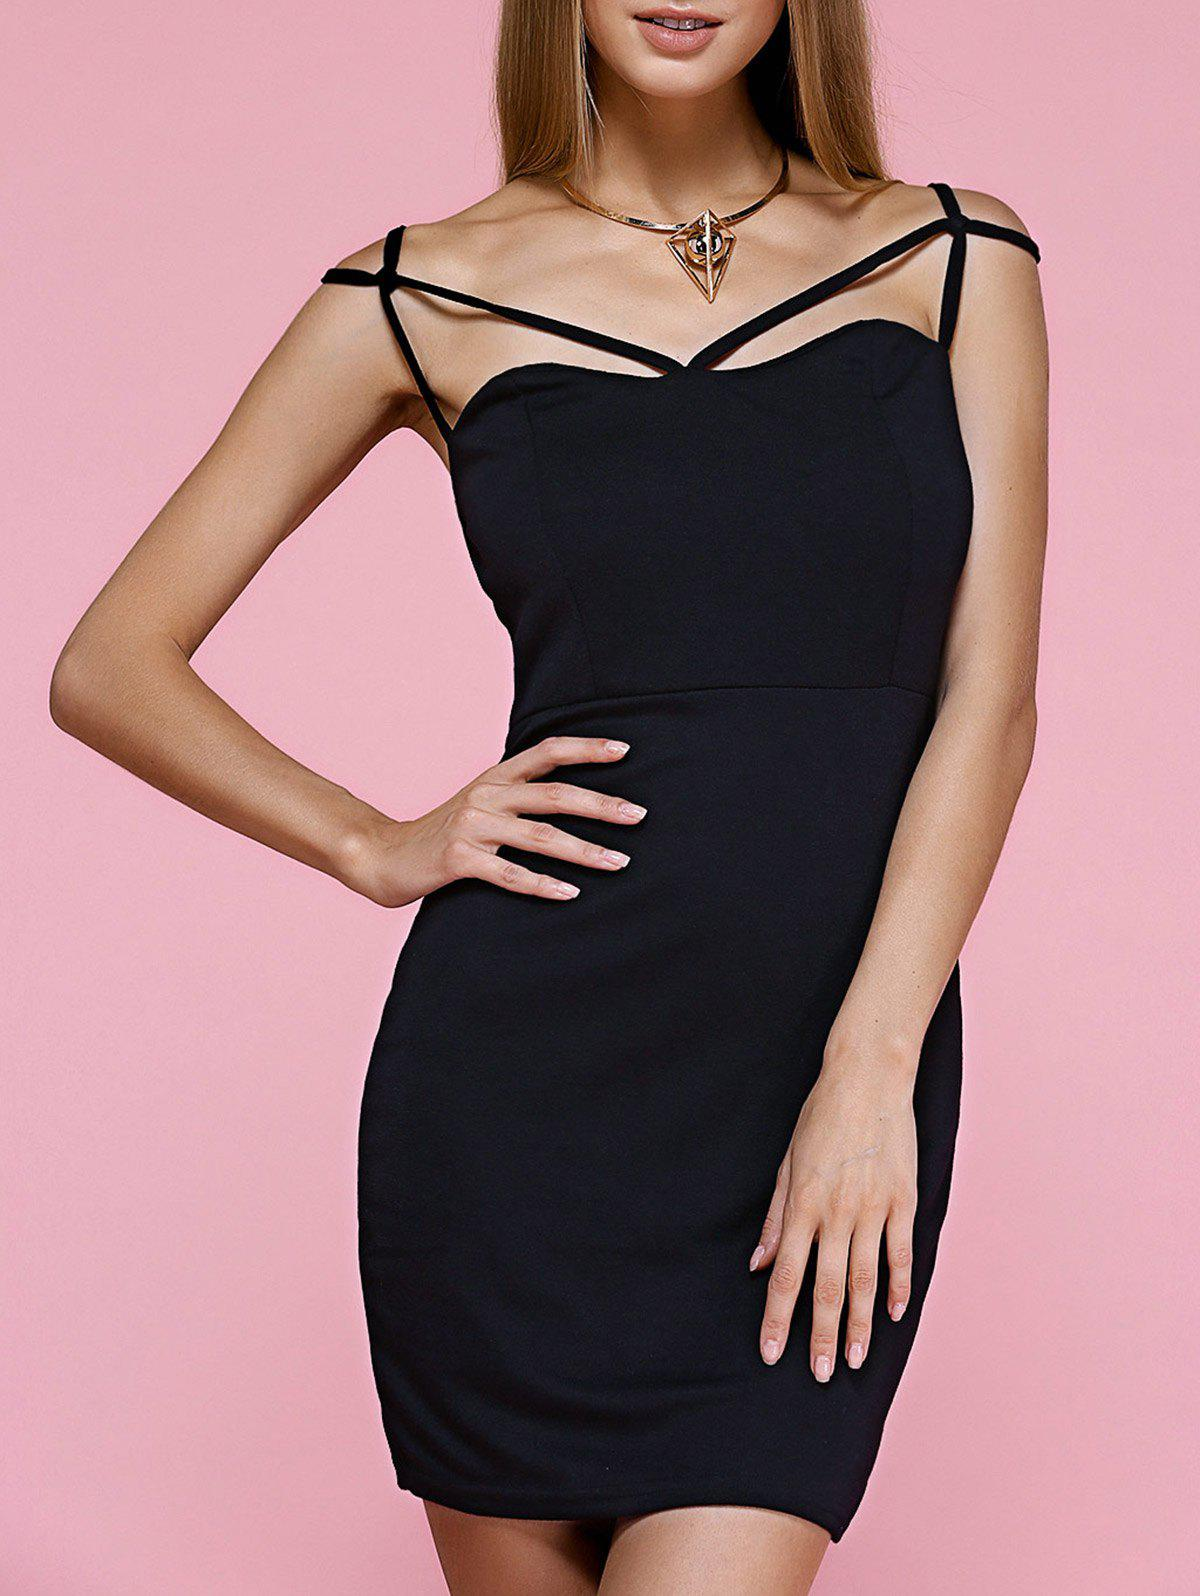 Alluring Spaghetti Strap Criss Cross Black Dress For Women - BLACK L